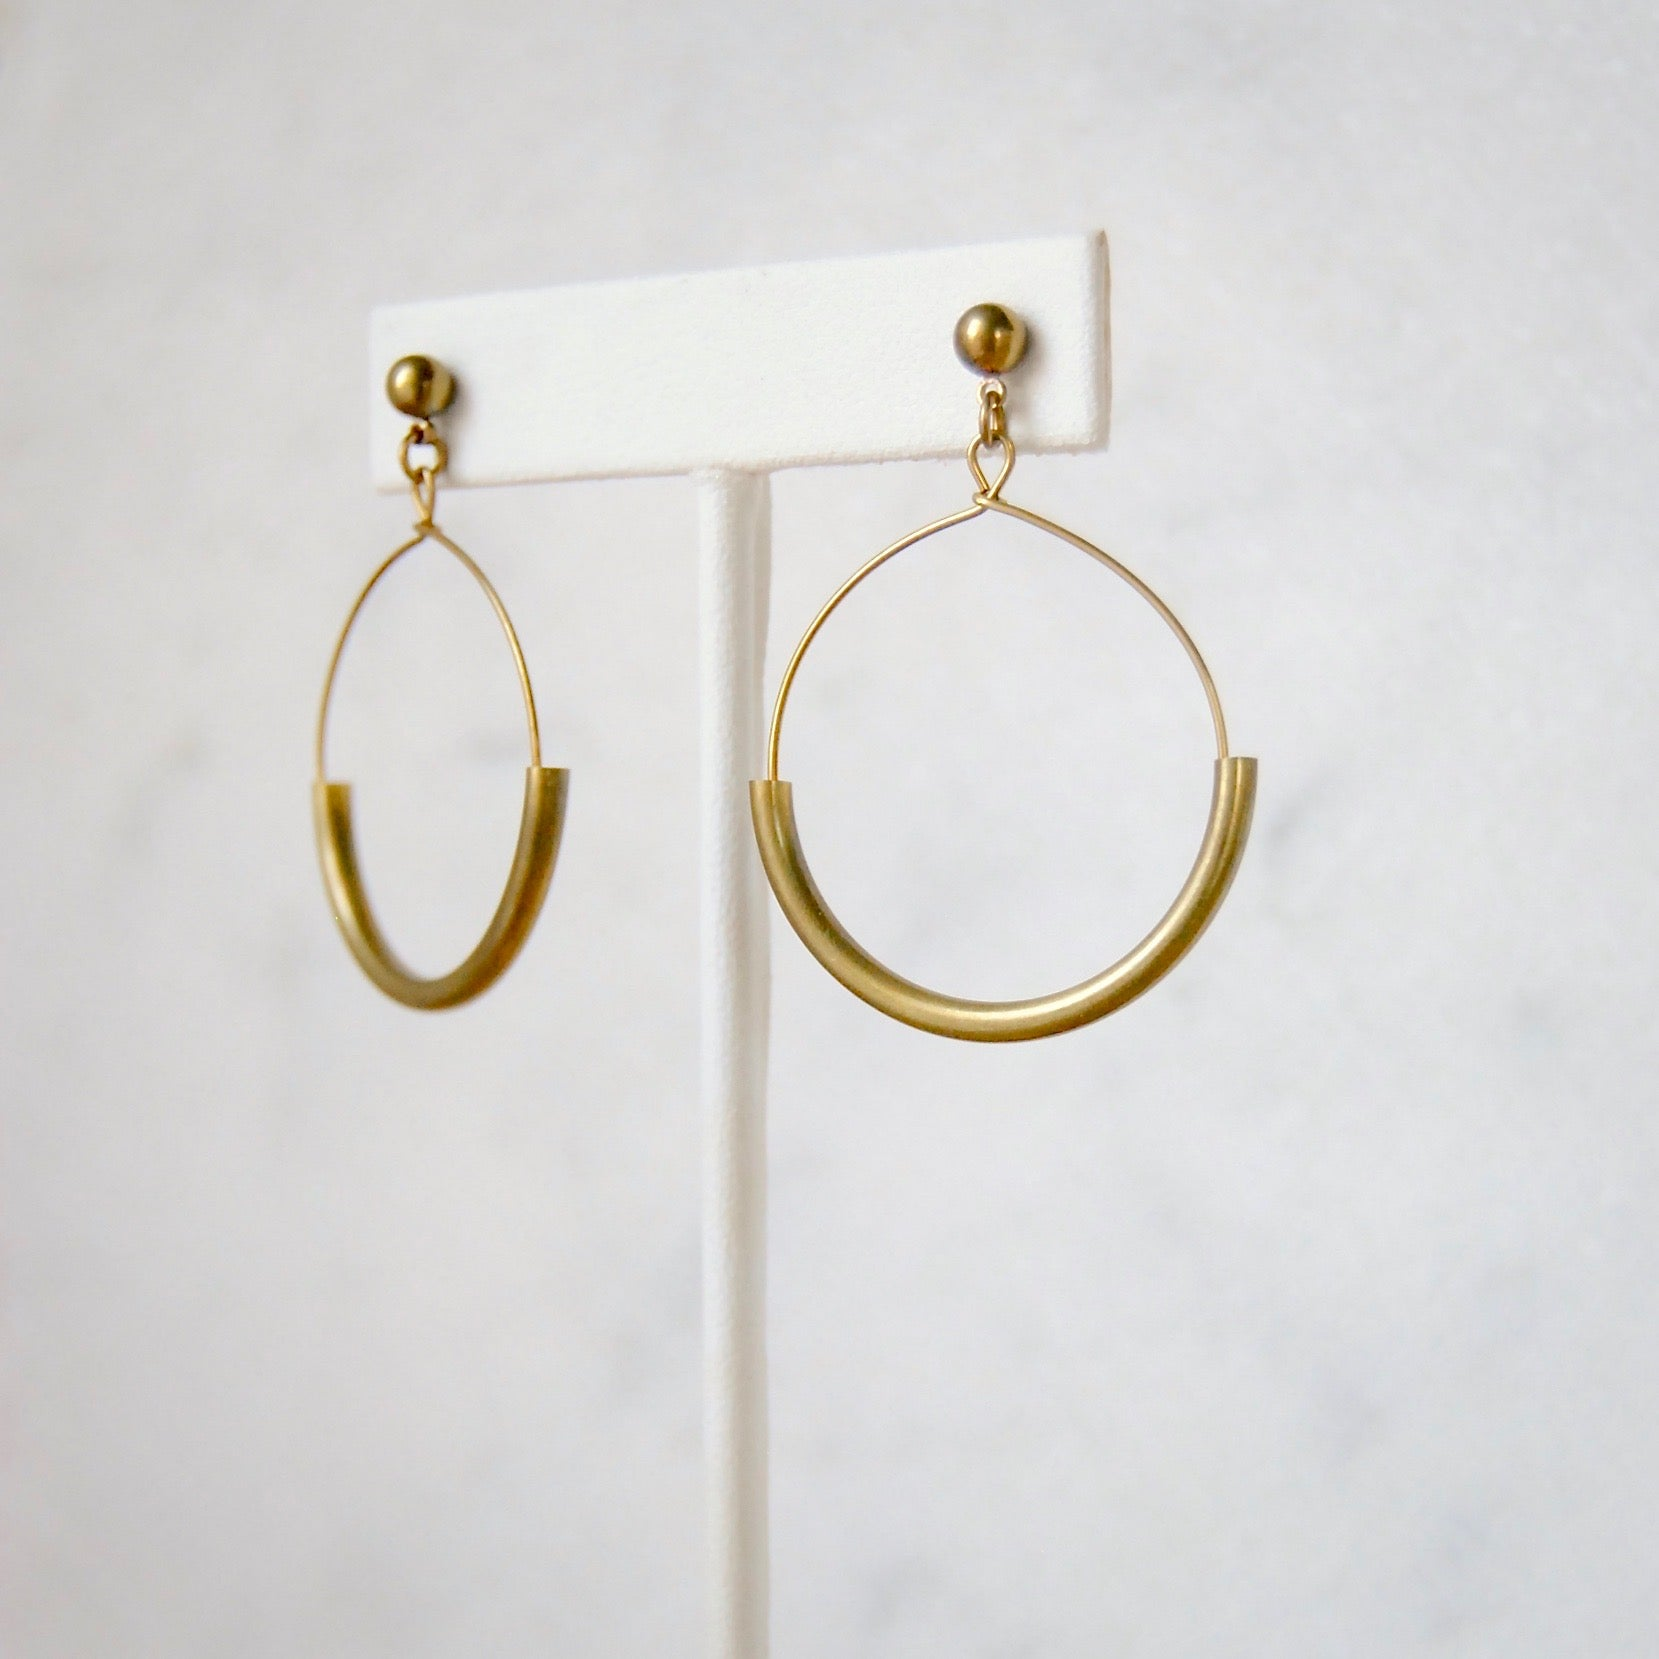 MEDIUM ARC EARRINGS